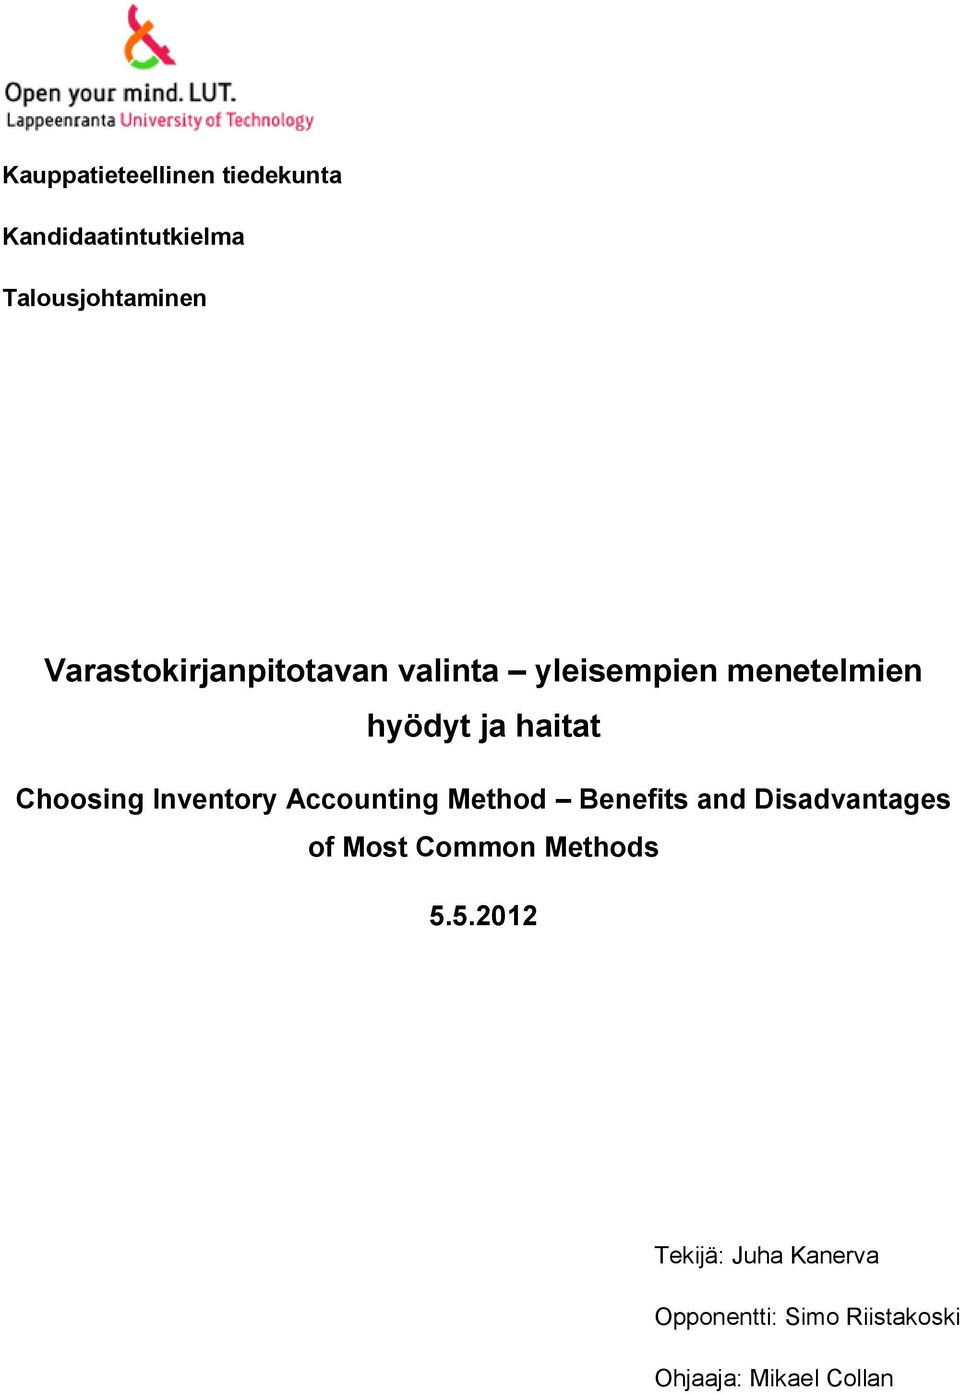 Choosing Inventory Accounting Method Benefits and Disadvantages of Most